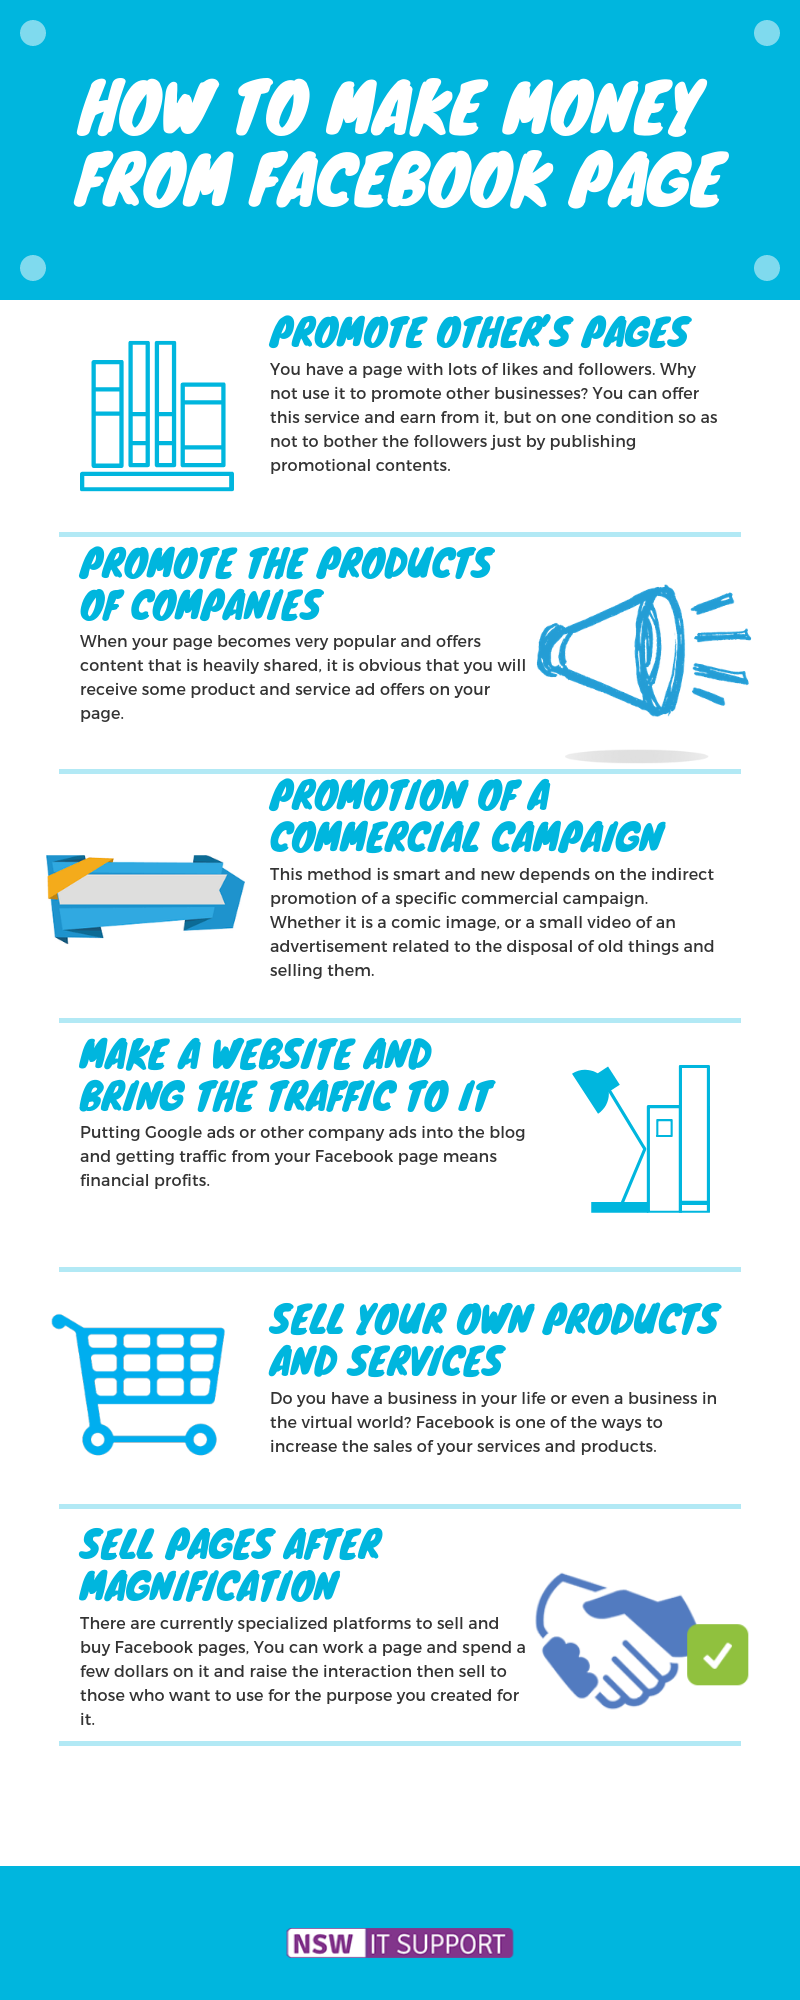 make money from facebook infographic